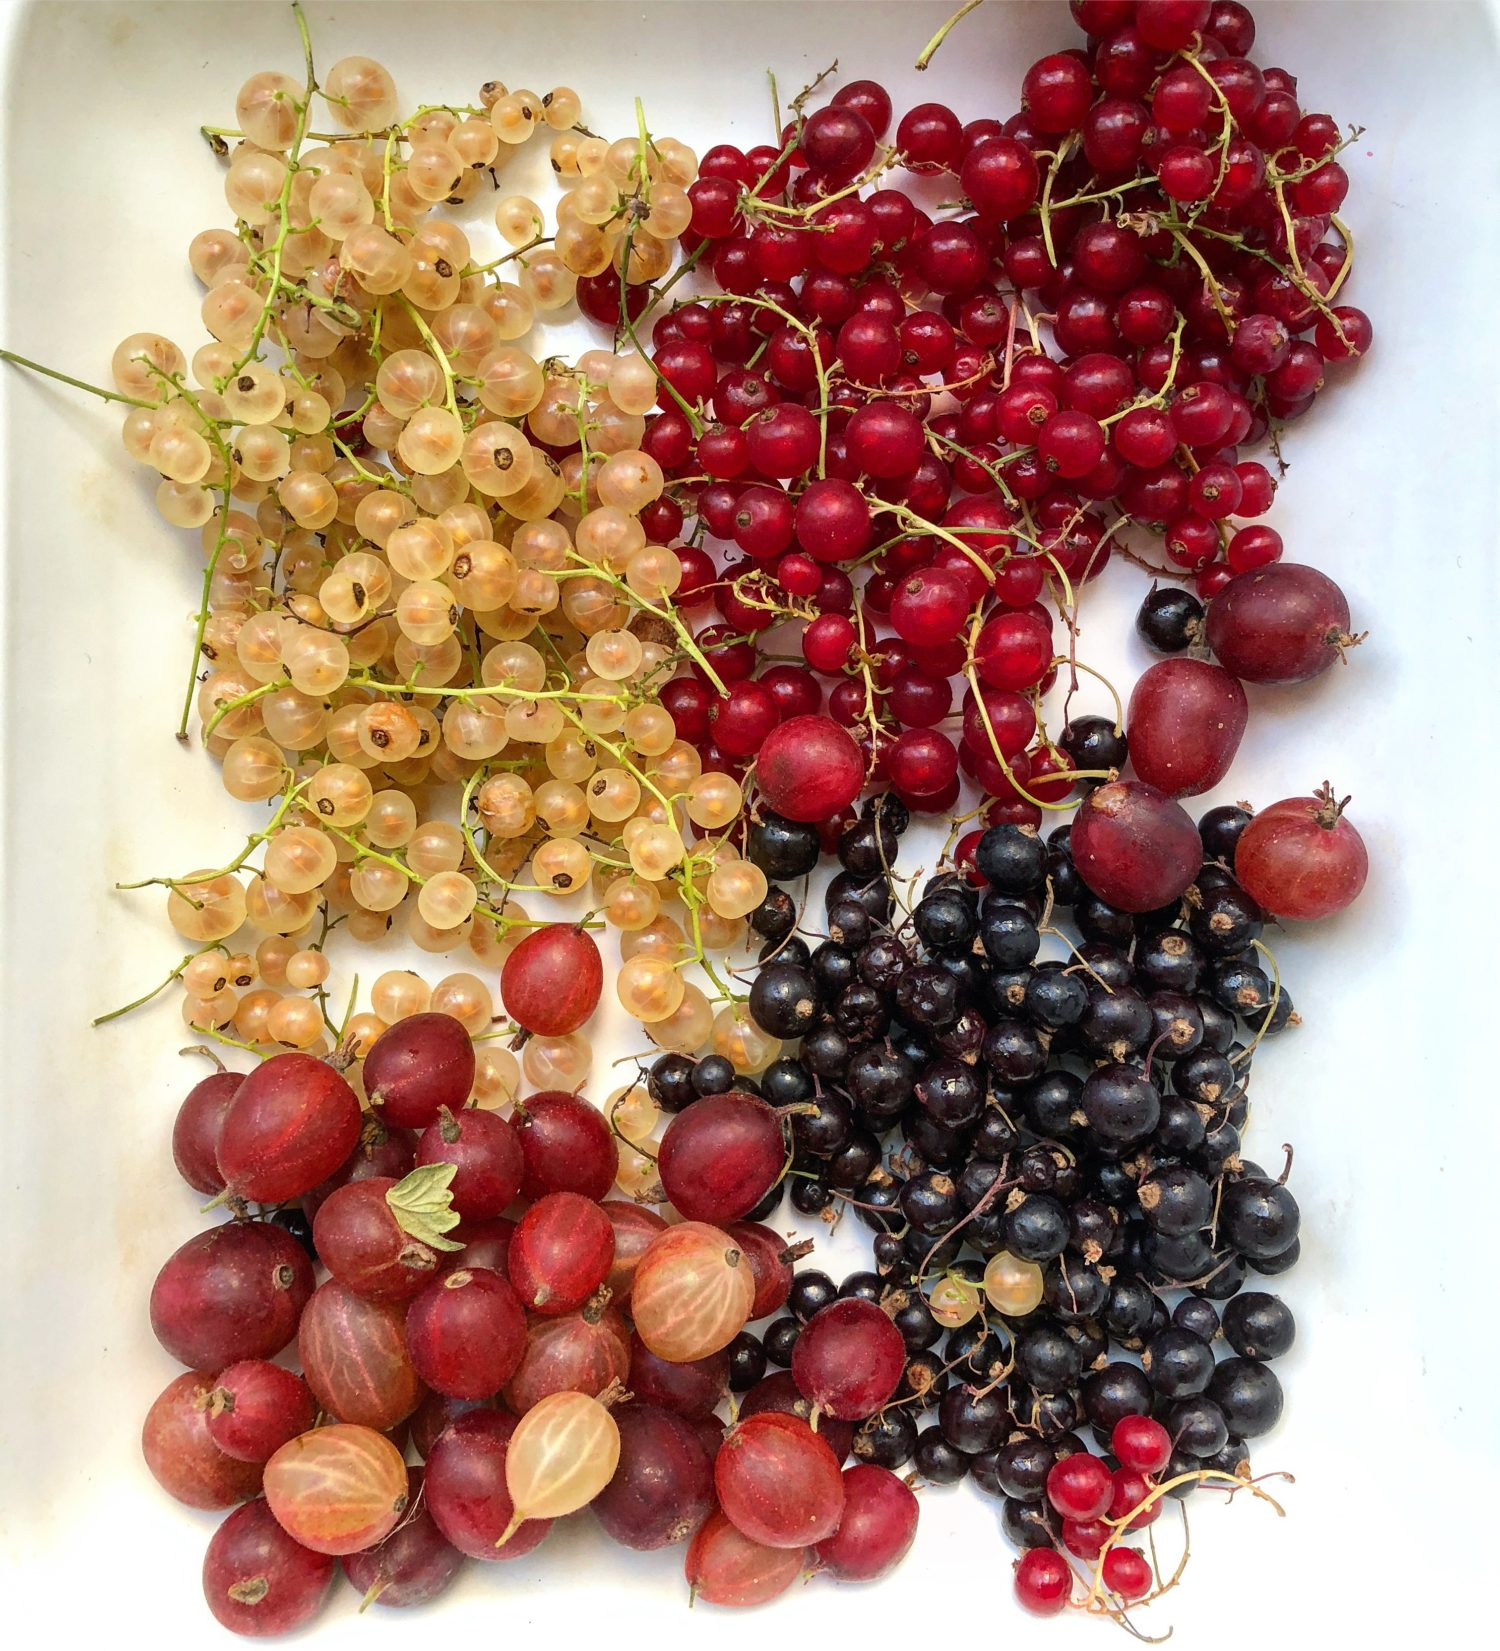 Luscious Summer berries, currants and gooseberries